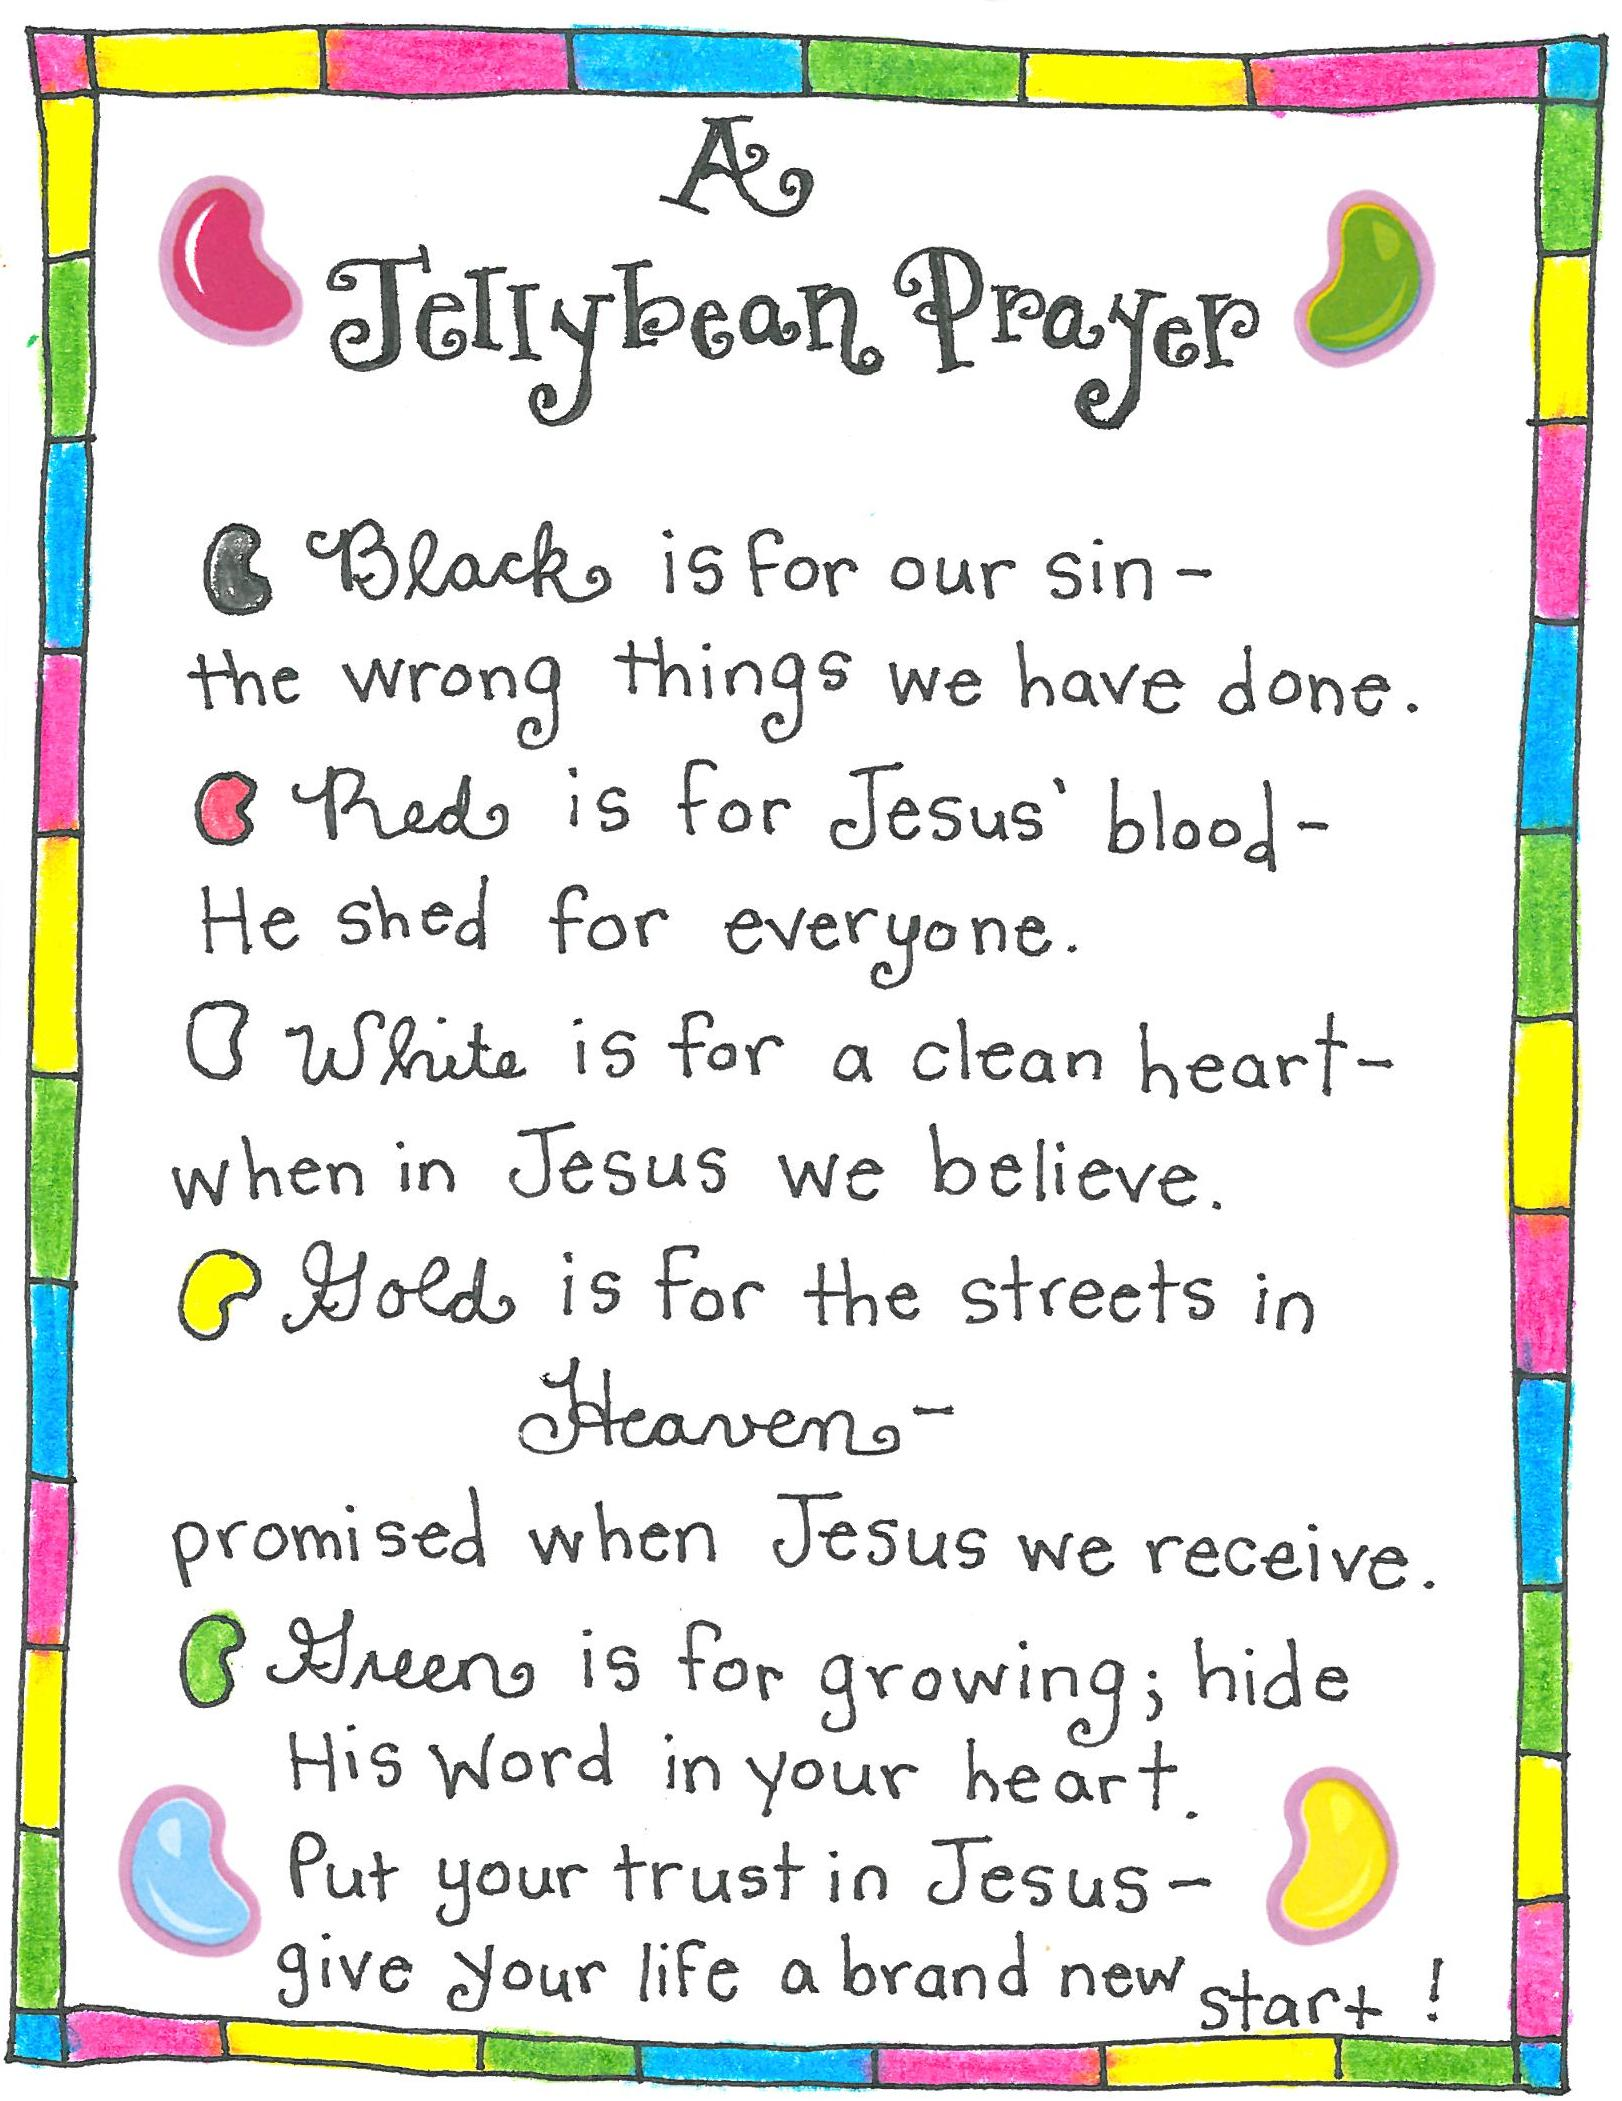 photograph regarding Holy Week Activities Printable named Rejoice Holy 7 days (with uncomplicated actions for just about every working day)